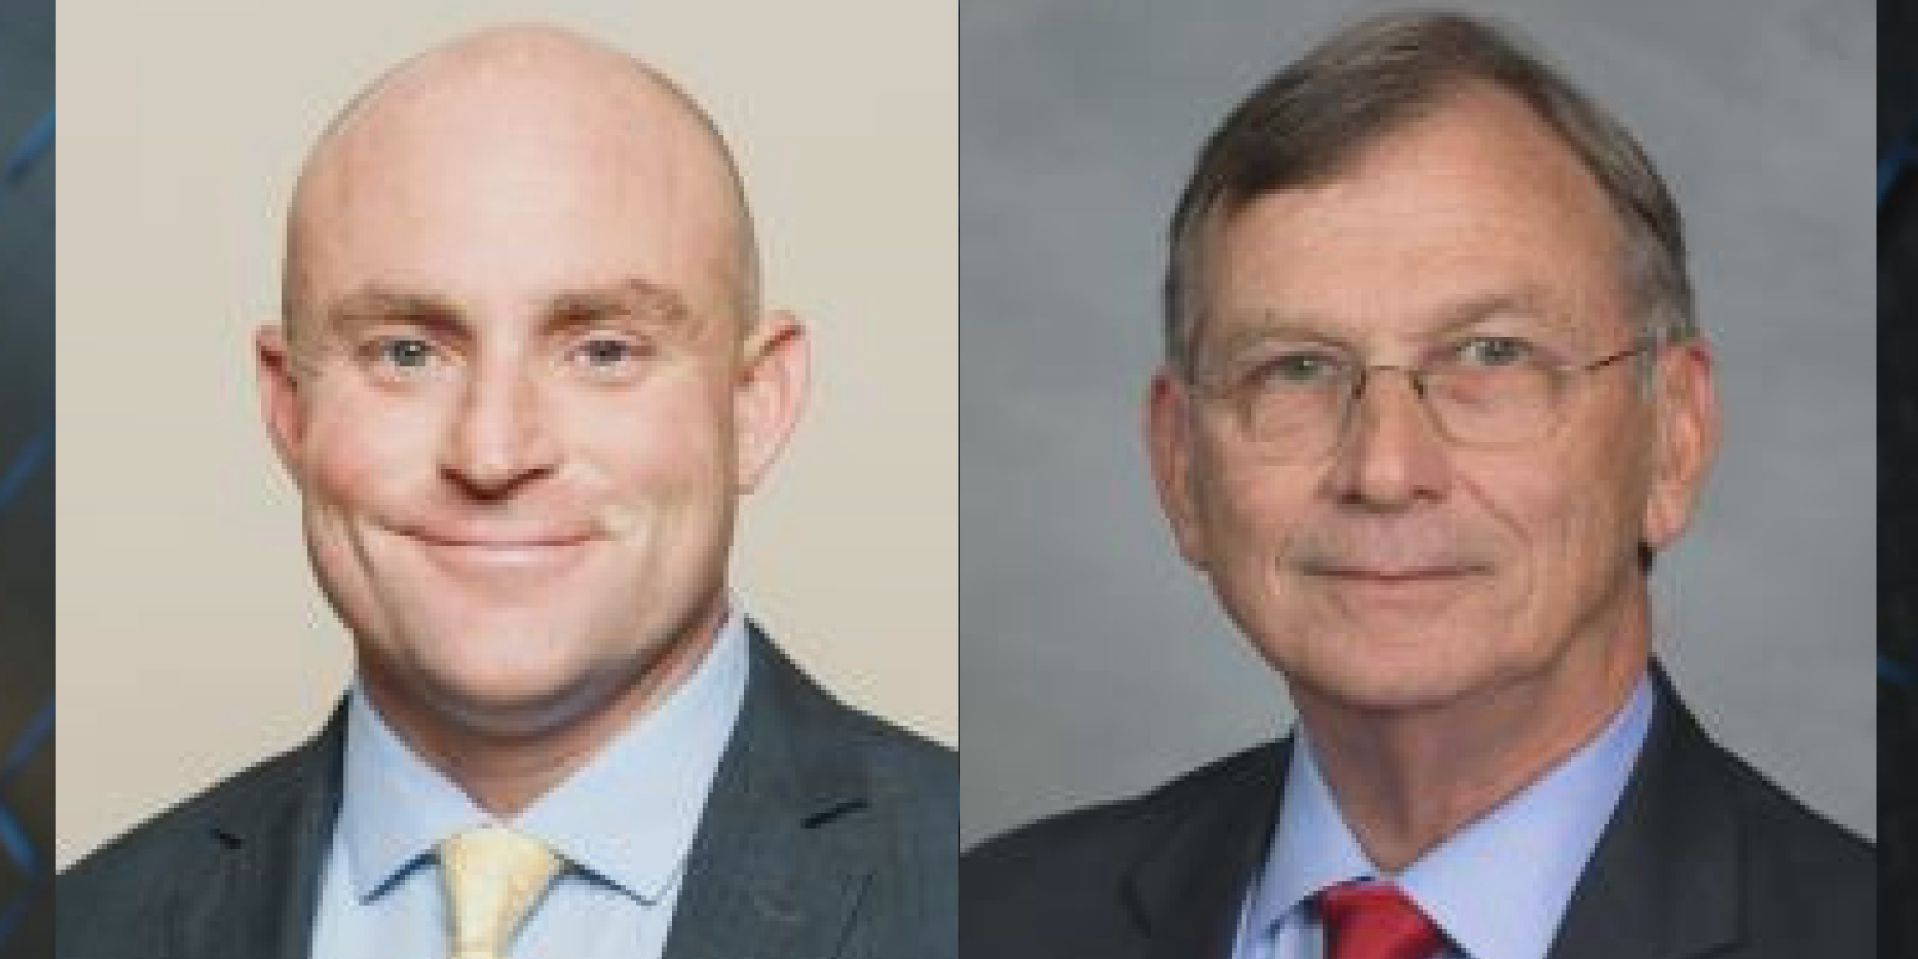 Senators Britt, Rabon given leadership roles in General Assembly